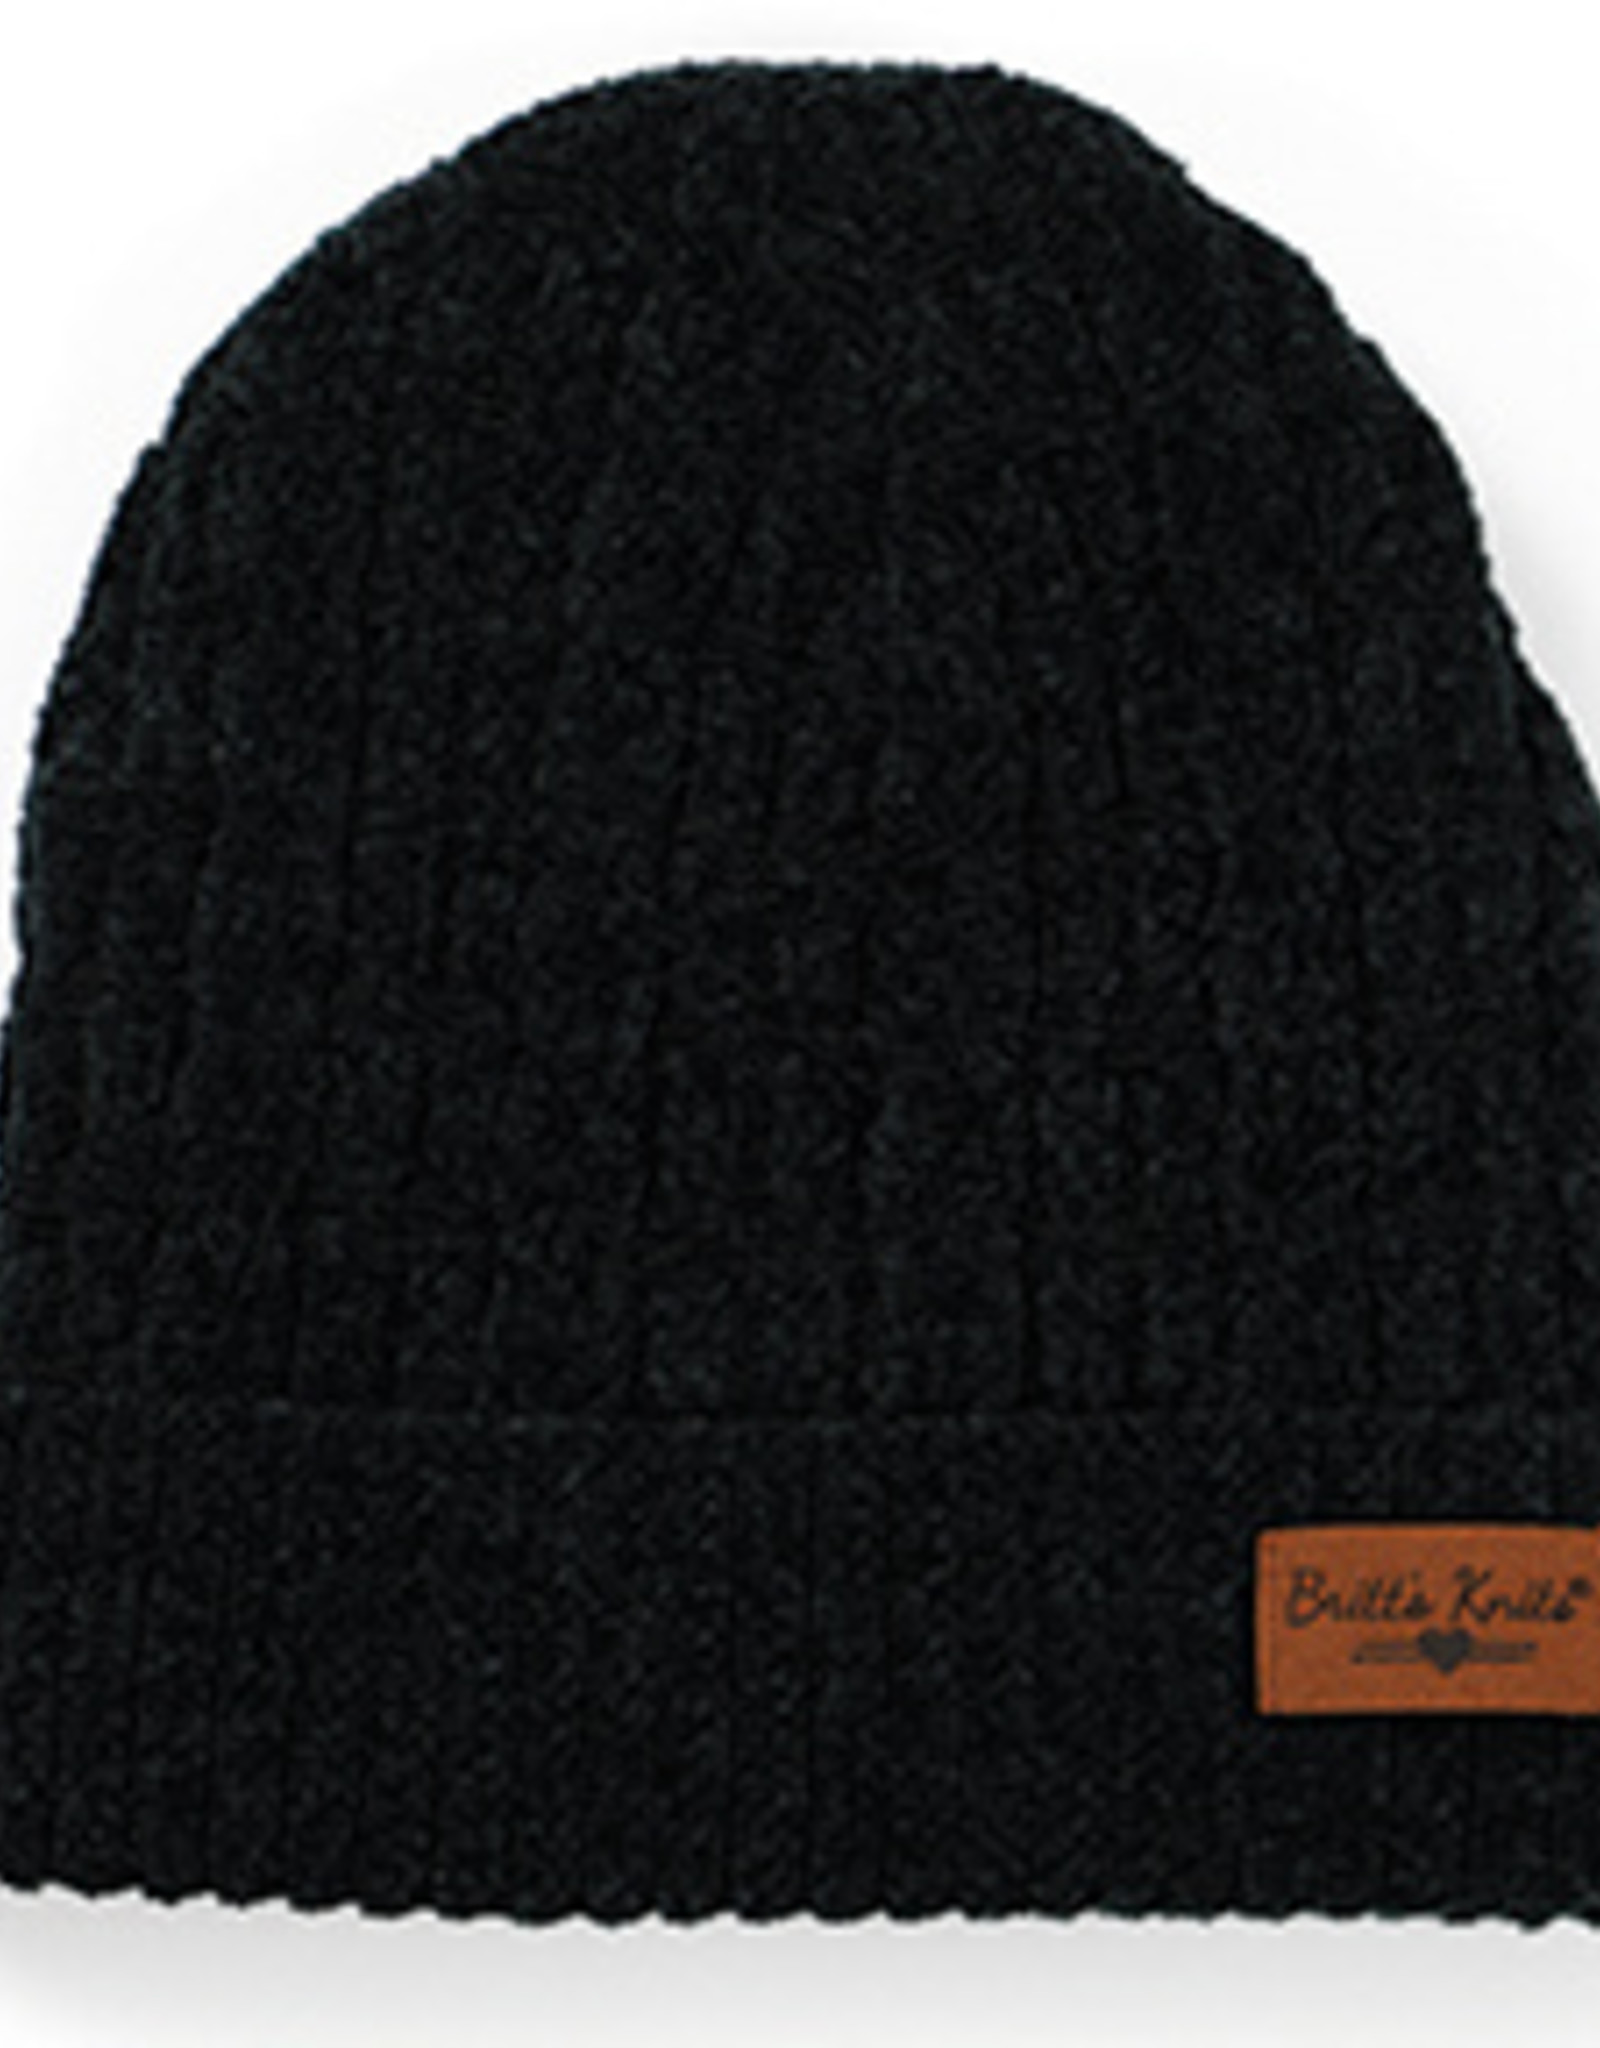 Britts Knits - Soft Chenille Hat